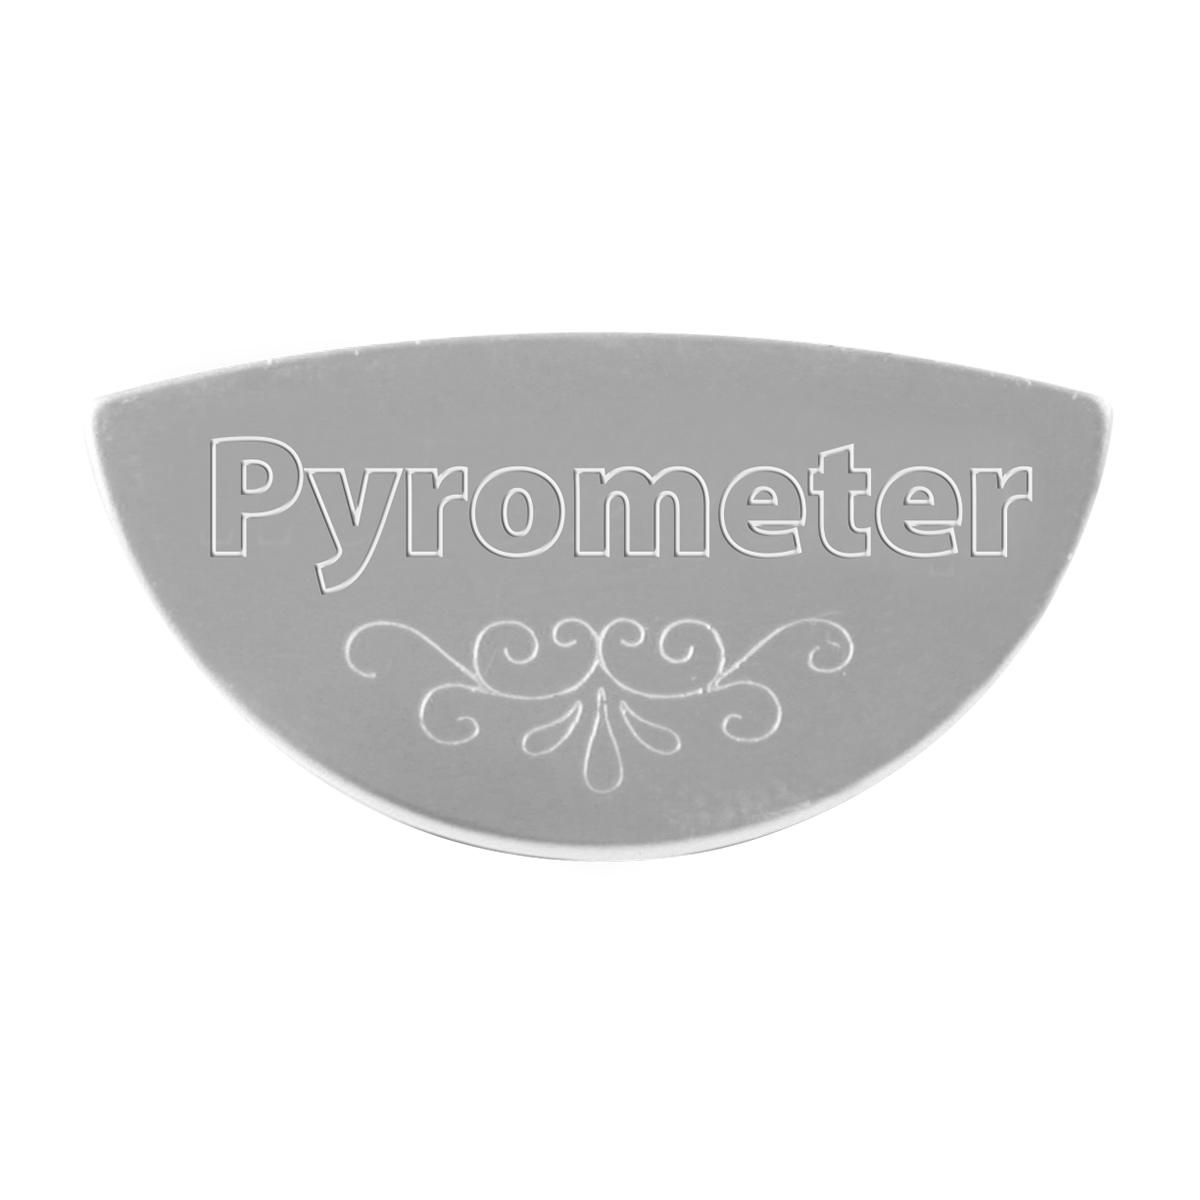 68645 Stainless Steel Pyrometer Gauge Emblem for KW